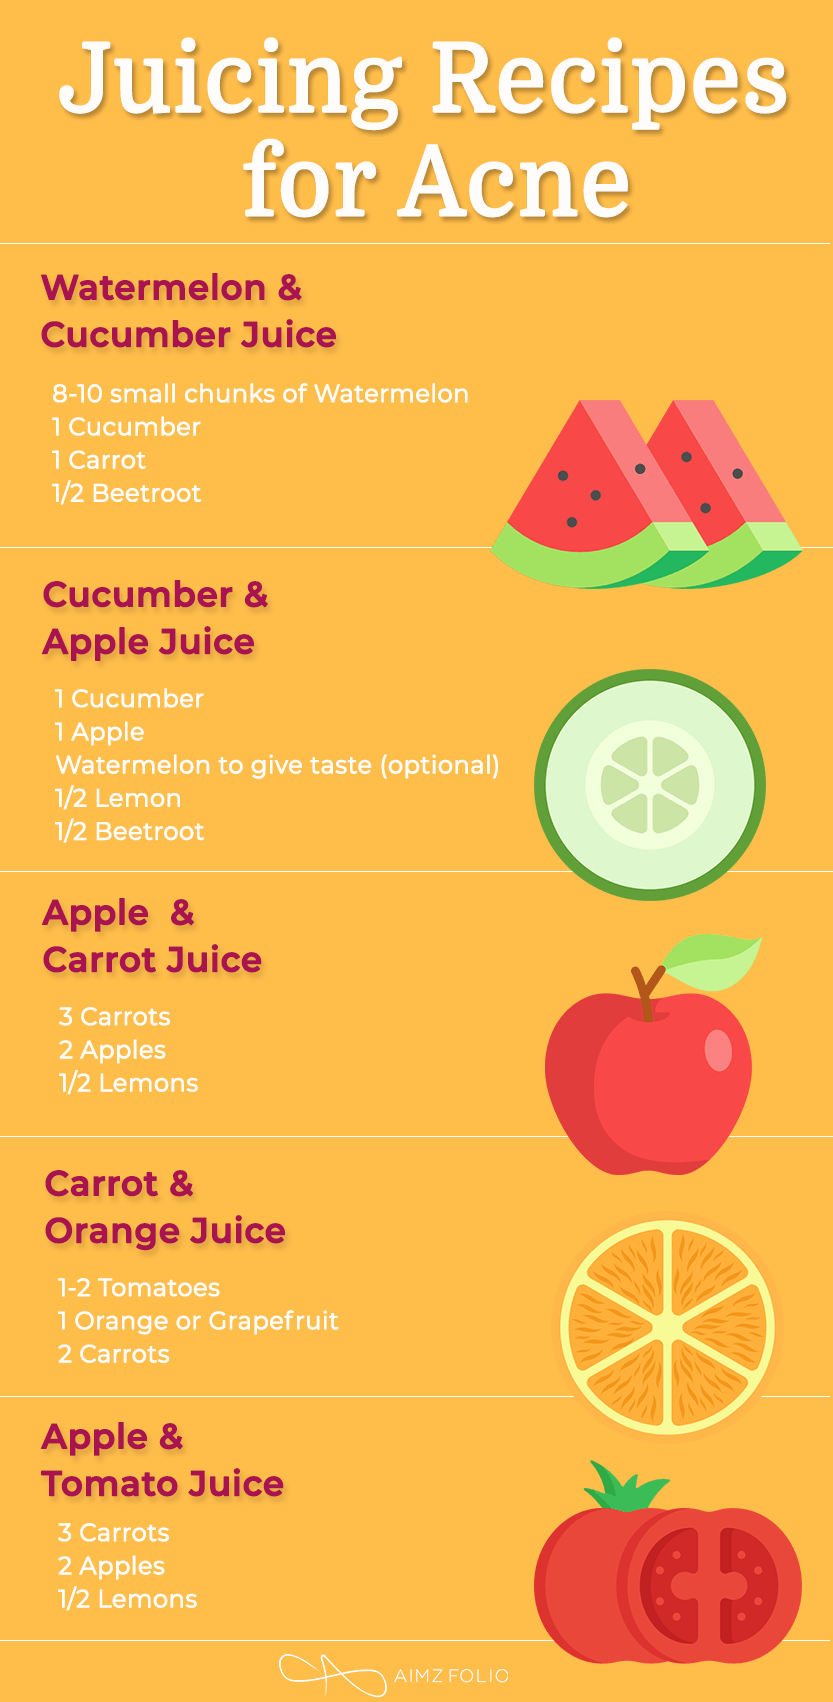 Juicing Recipes to get Rid of Acne & Blemishes || Get Beautiful Skin with Juices - AimzFolio #healthyjuicerecipes